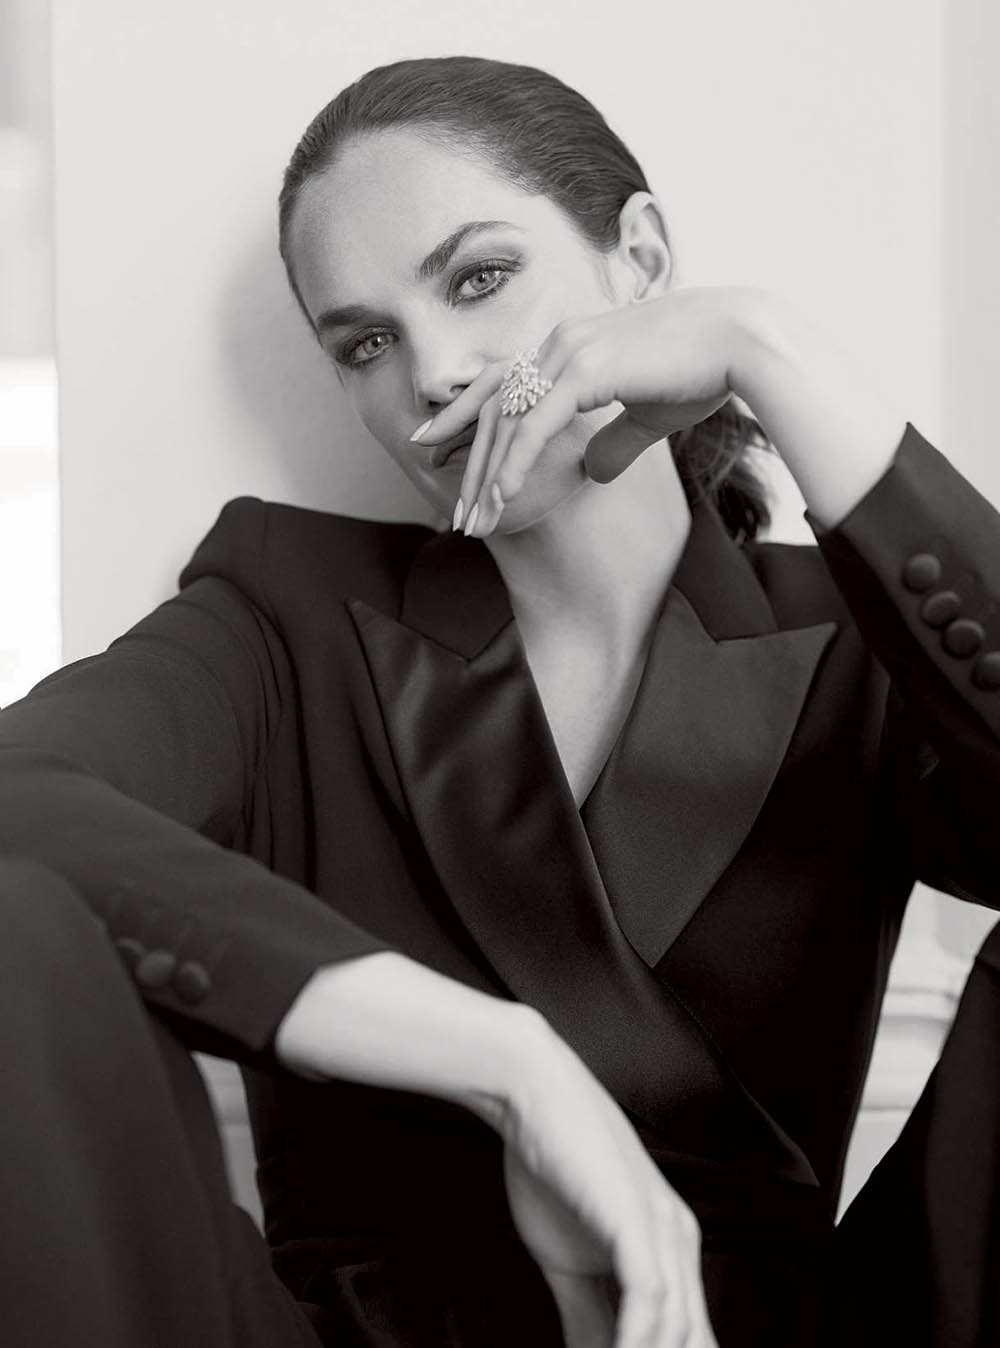 Ruth Wilson covers Harper's Bazaar UK December 2019 by Richard PhibbsRuth Wilson covers Harper's Bazaar UK December 2019 by Richard Phibbs